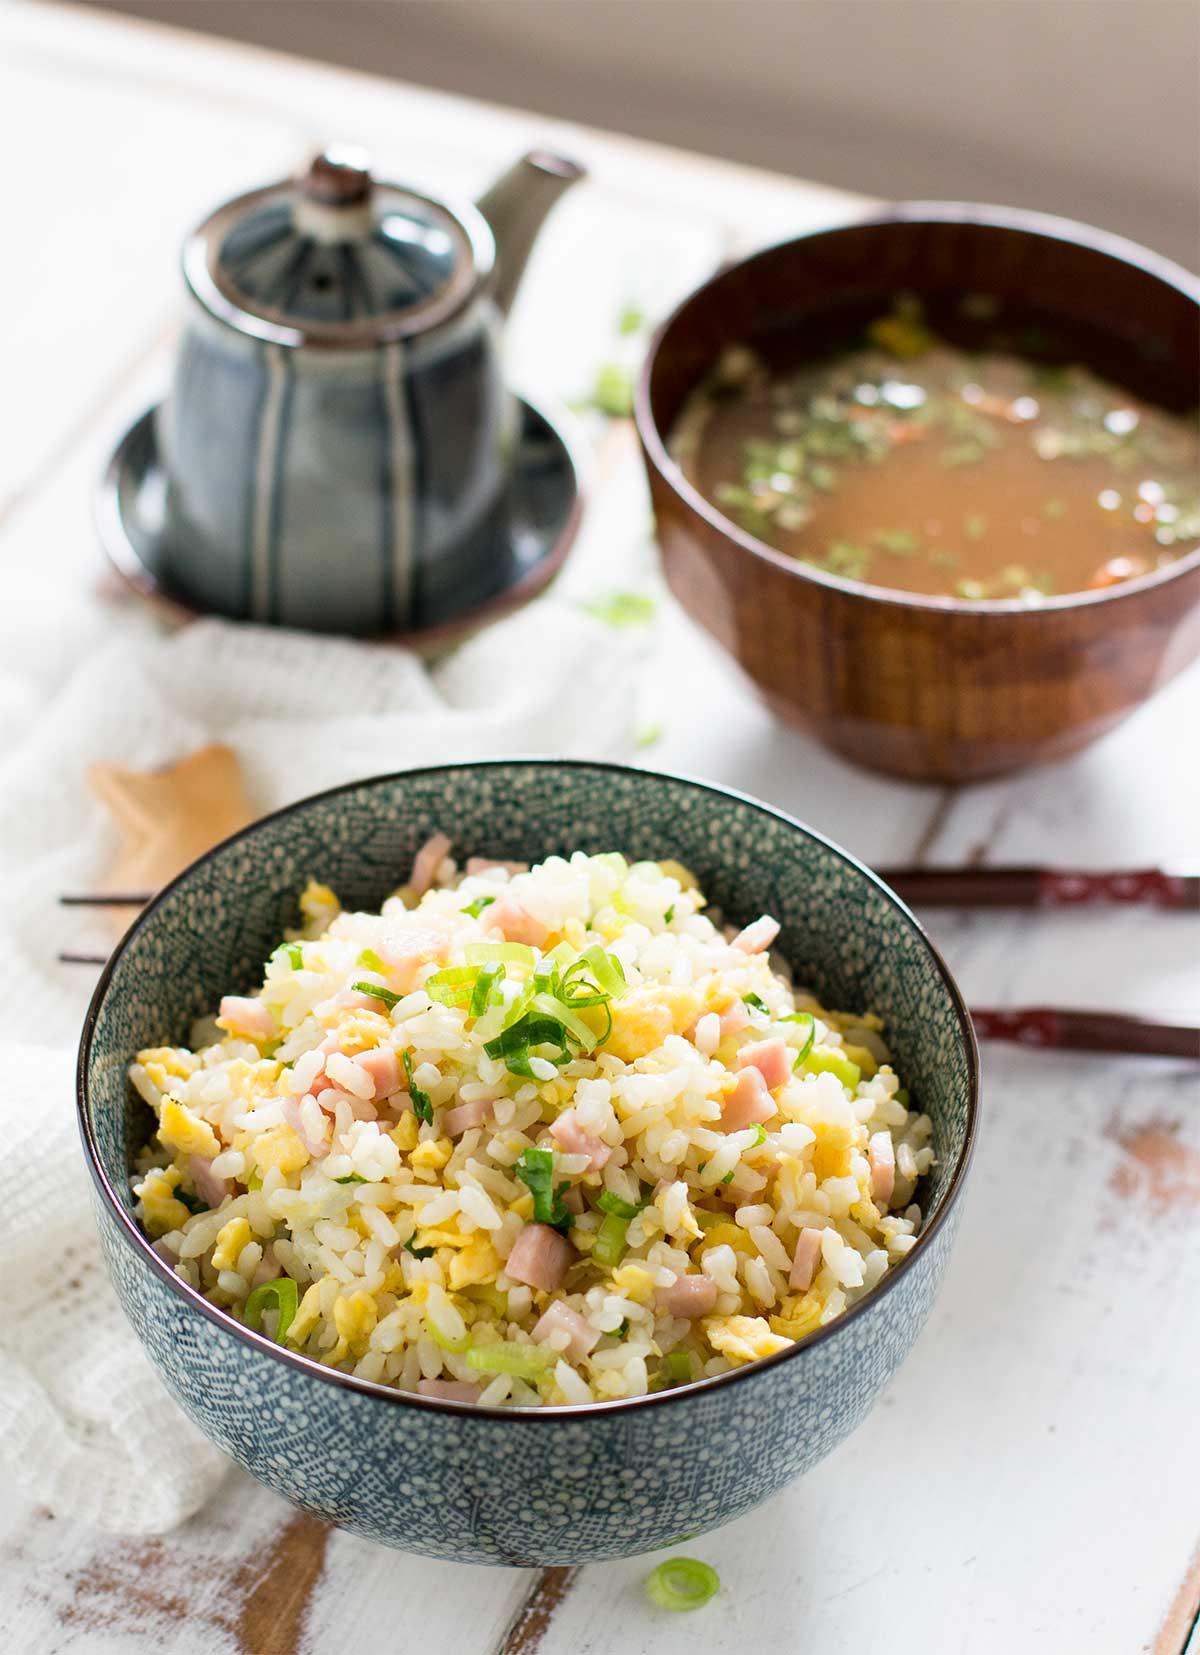 Japanese fried rice served in a blue rice bowl and miso soup